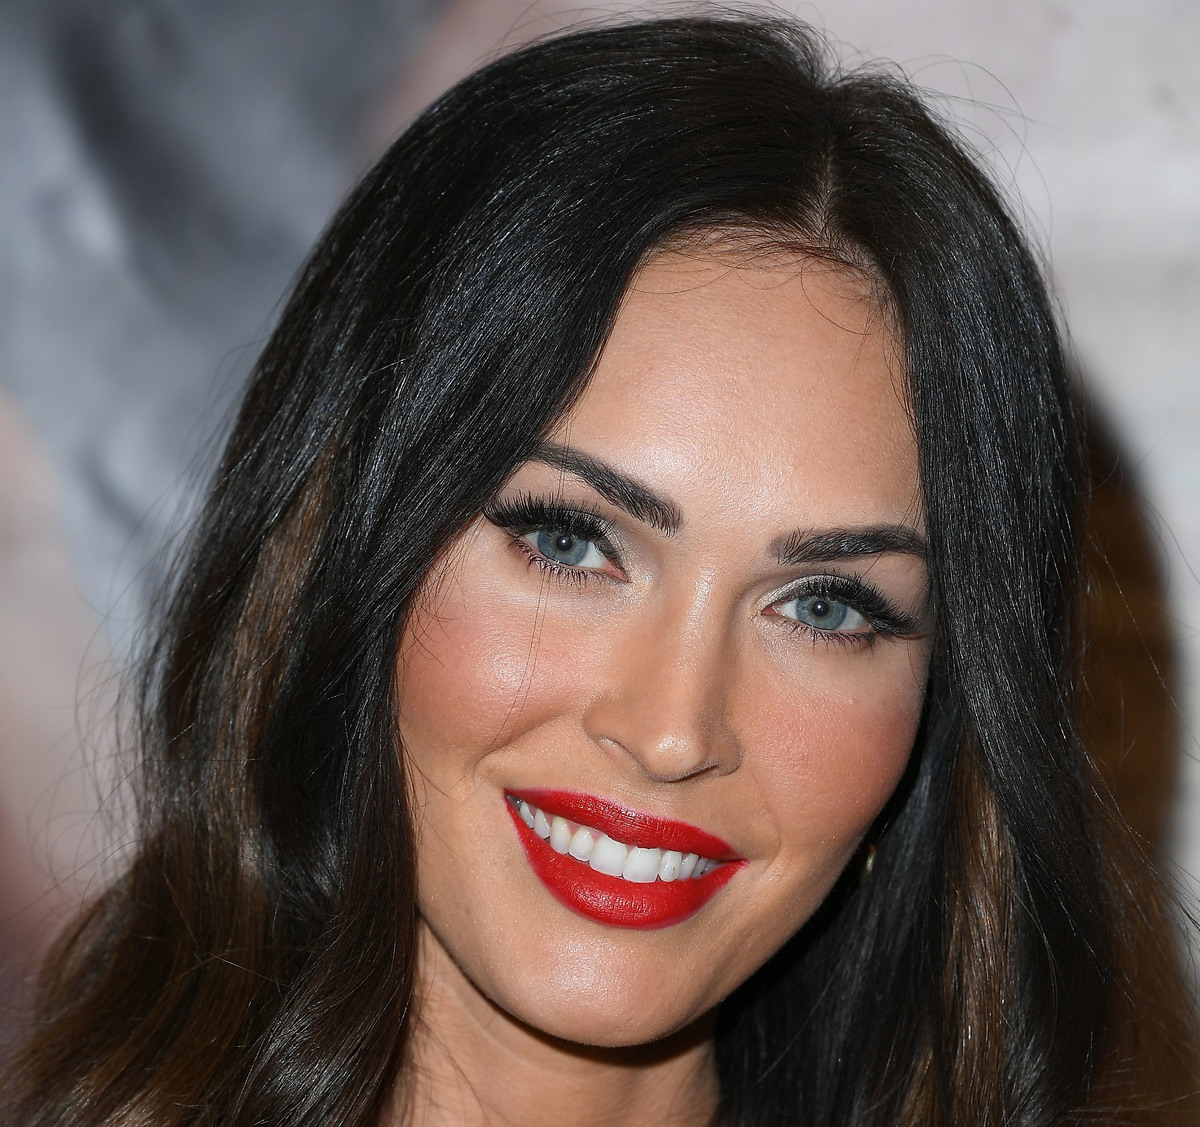 Actress Megan Fox Appears At Forever 21 To Promote Frederick's Of Hollywood